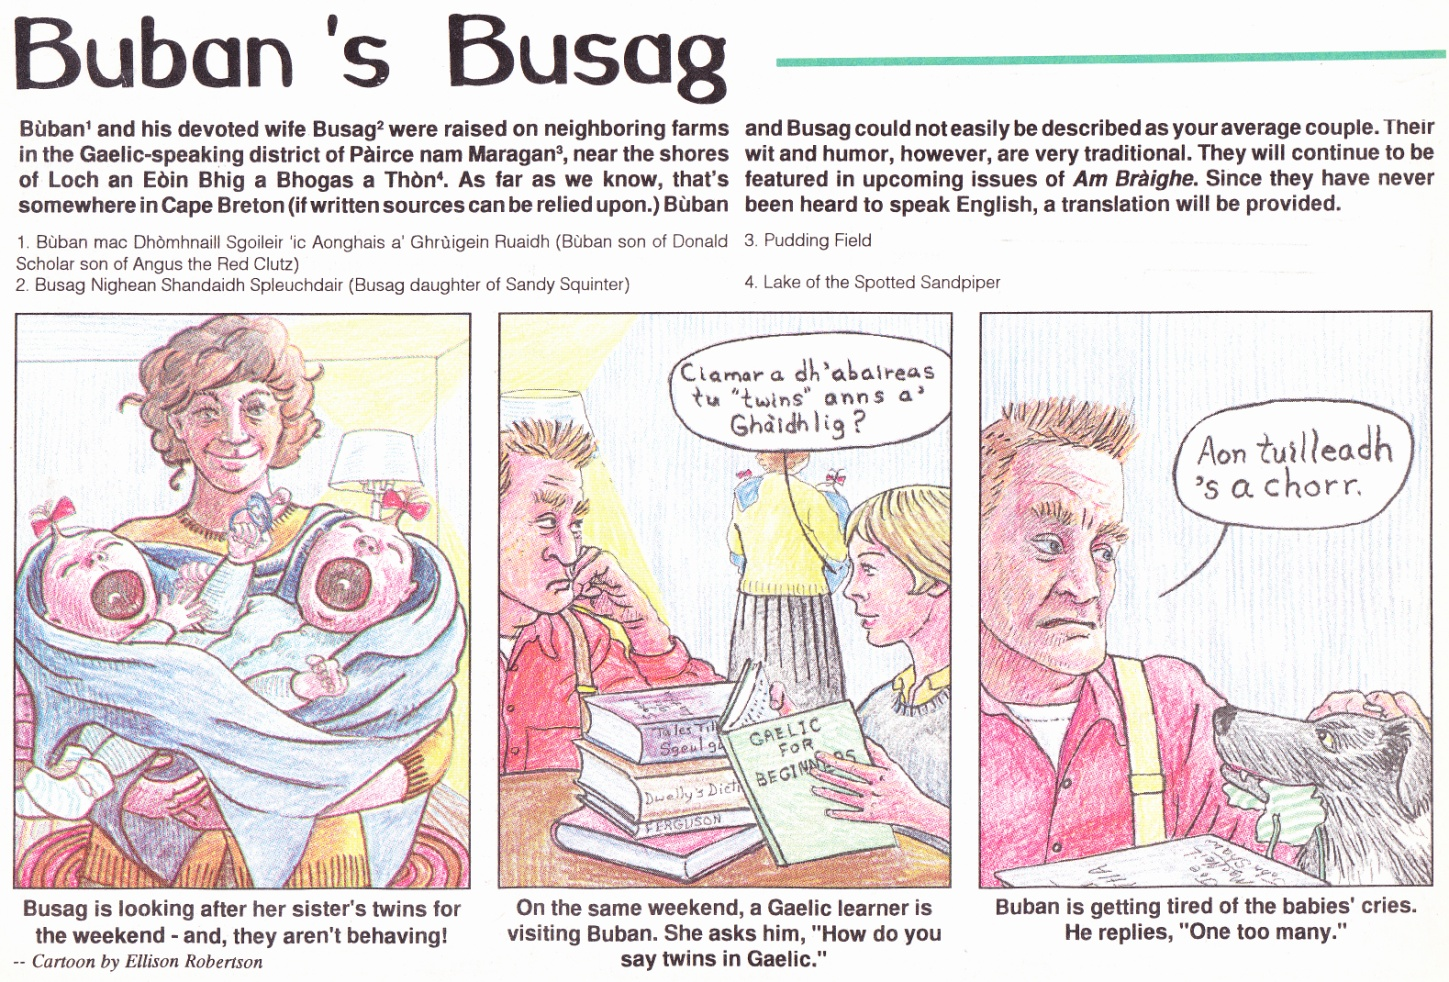 C:\Users\Robert\Documents\CARTOONING ILLUSTRATION ANIMATION\IMAGE CARTOON\IMAGE CARTOON B\BUBAN'S  BUSAG, AmBraighe, Winter 1994,95, 24.jpg